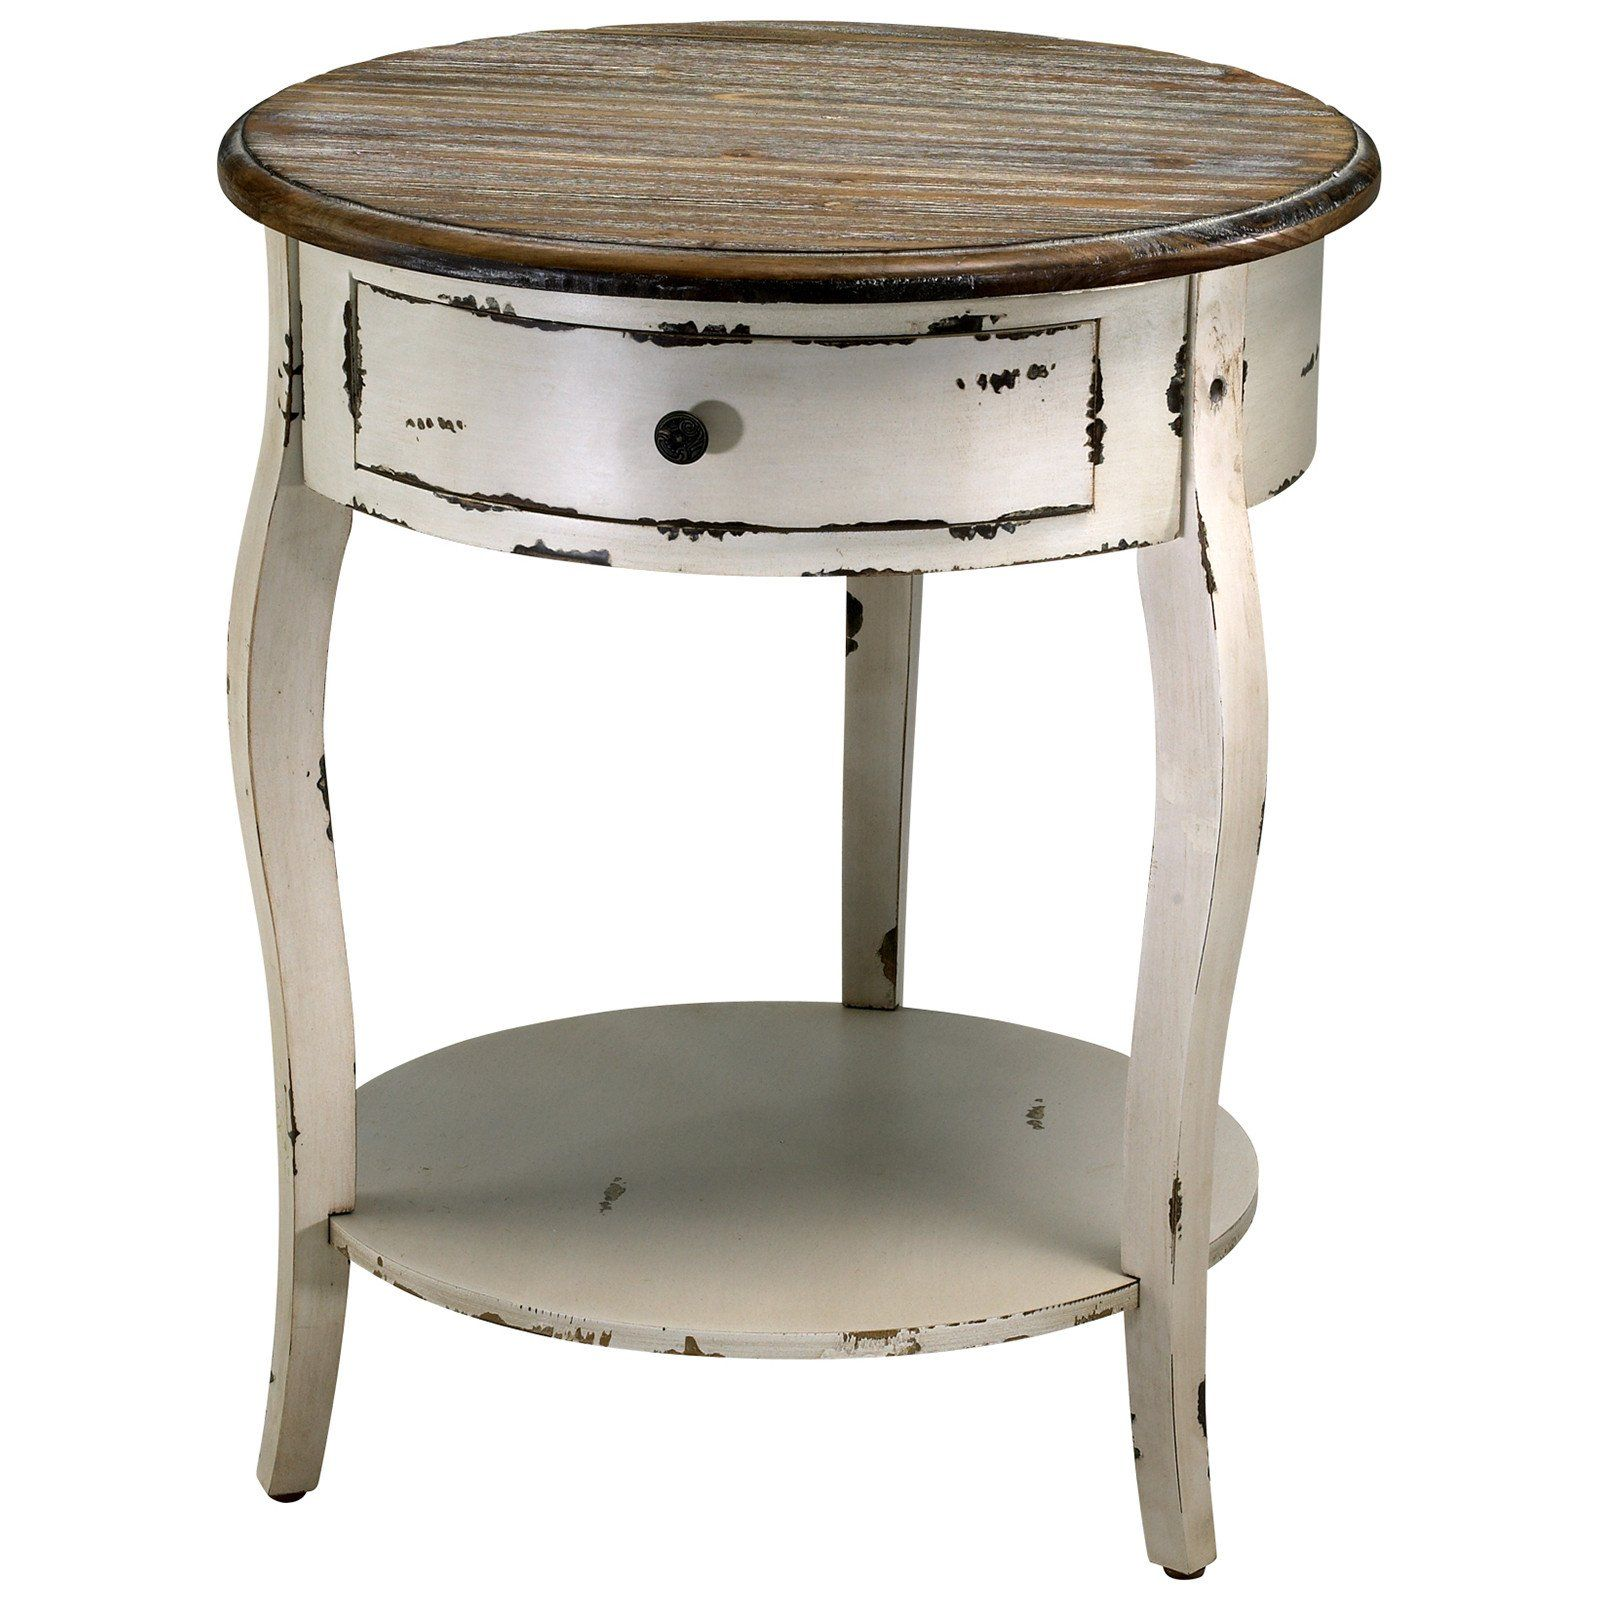 abelard side table distressed white and gray products round rustic accent patterned living room chairs beach coffee expandable trestle farmhouse plans pottery barn floor lamp